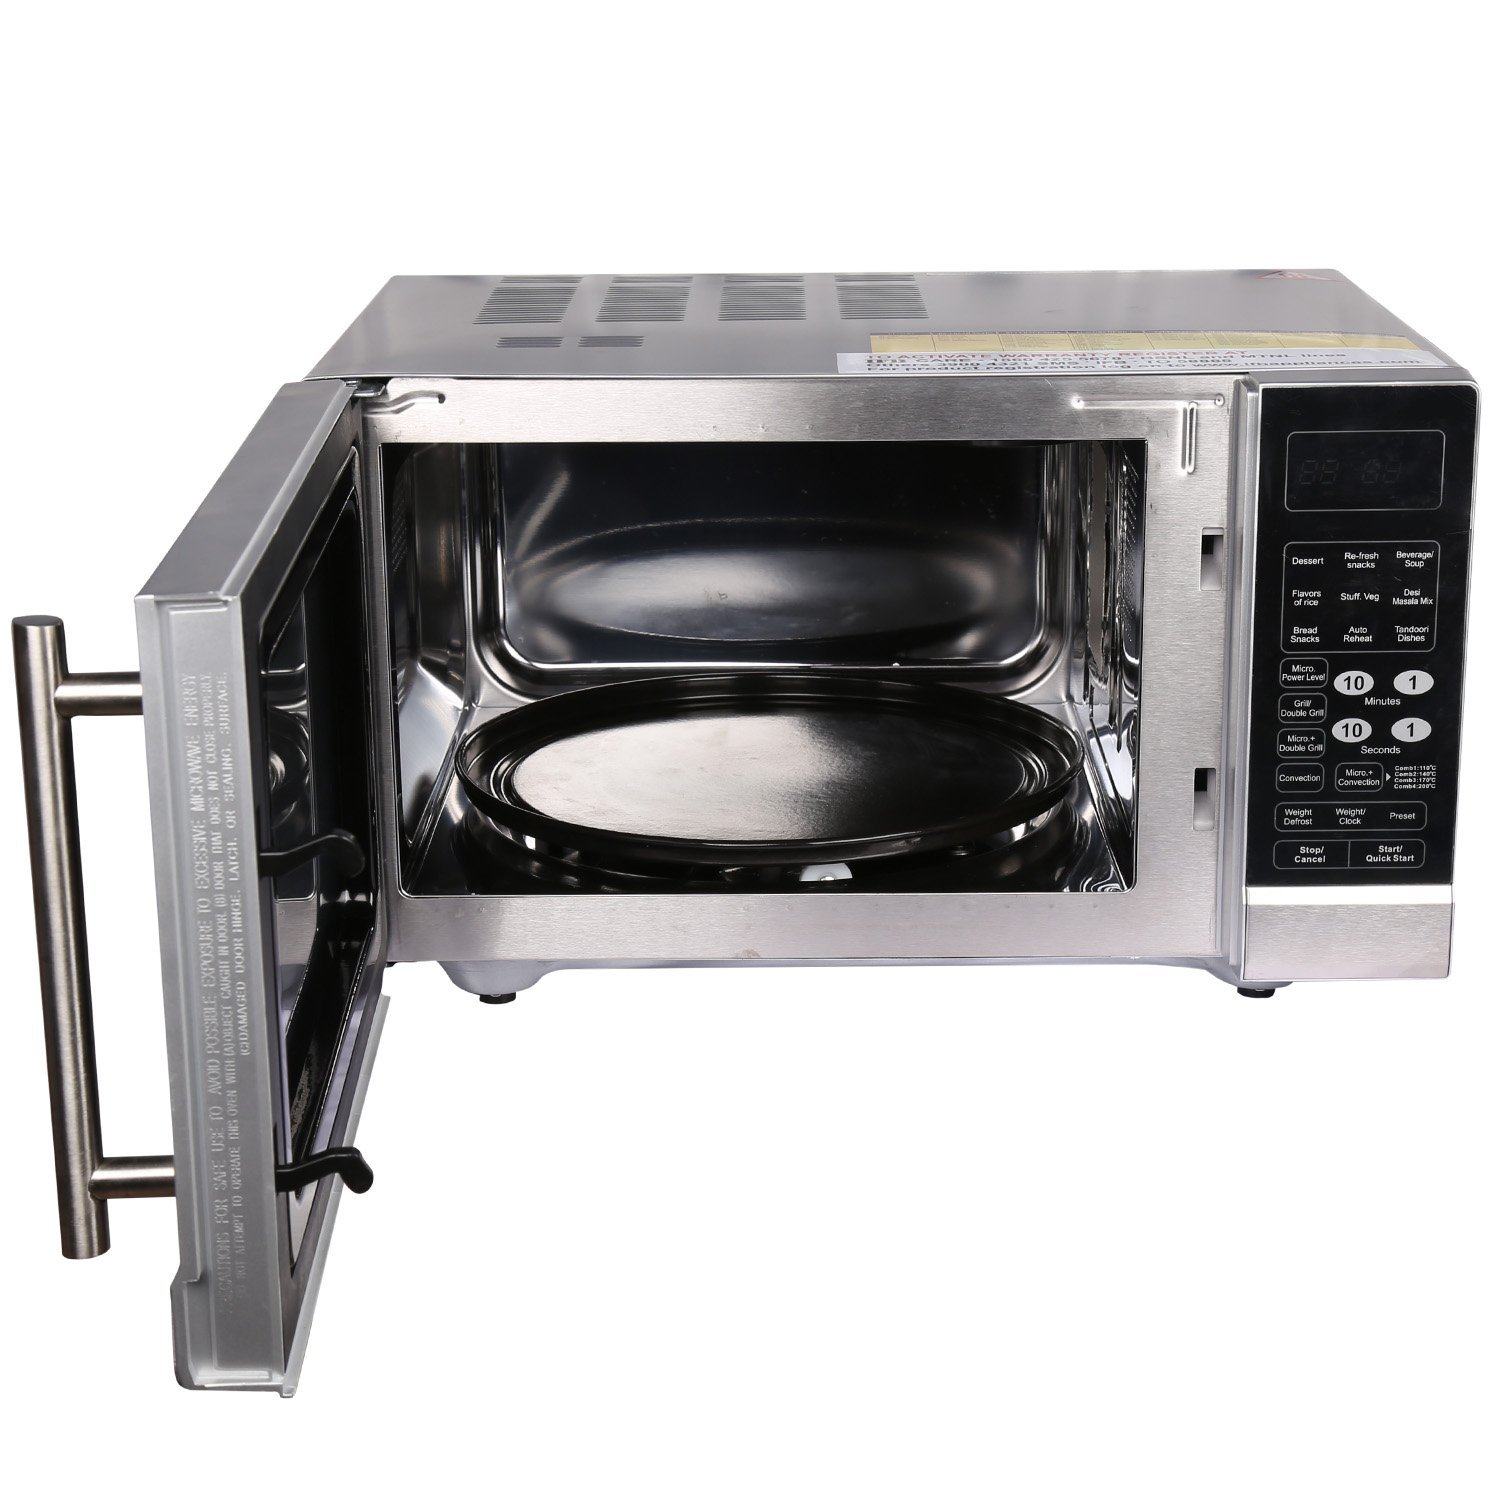 microwave oven IFB